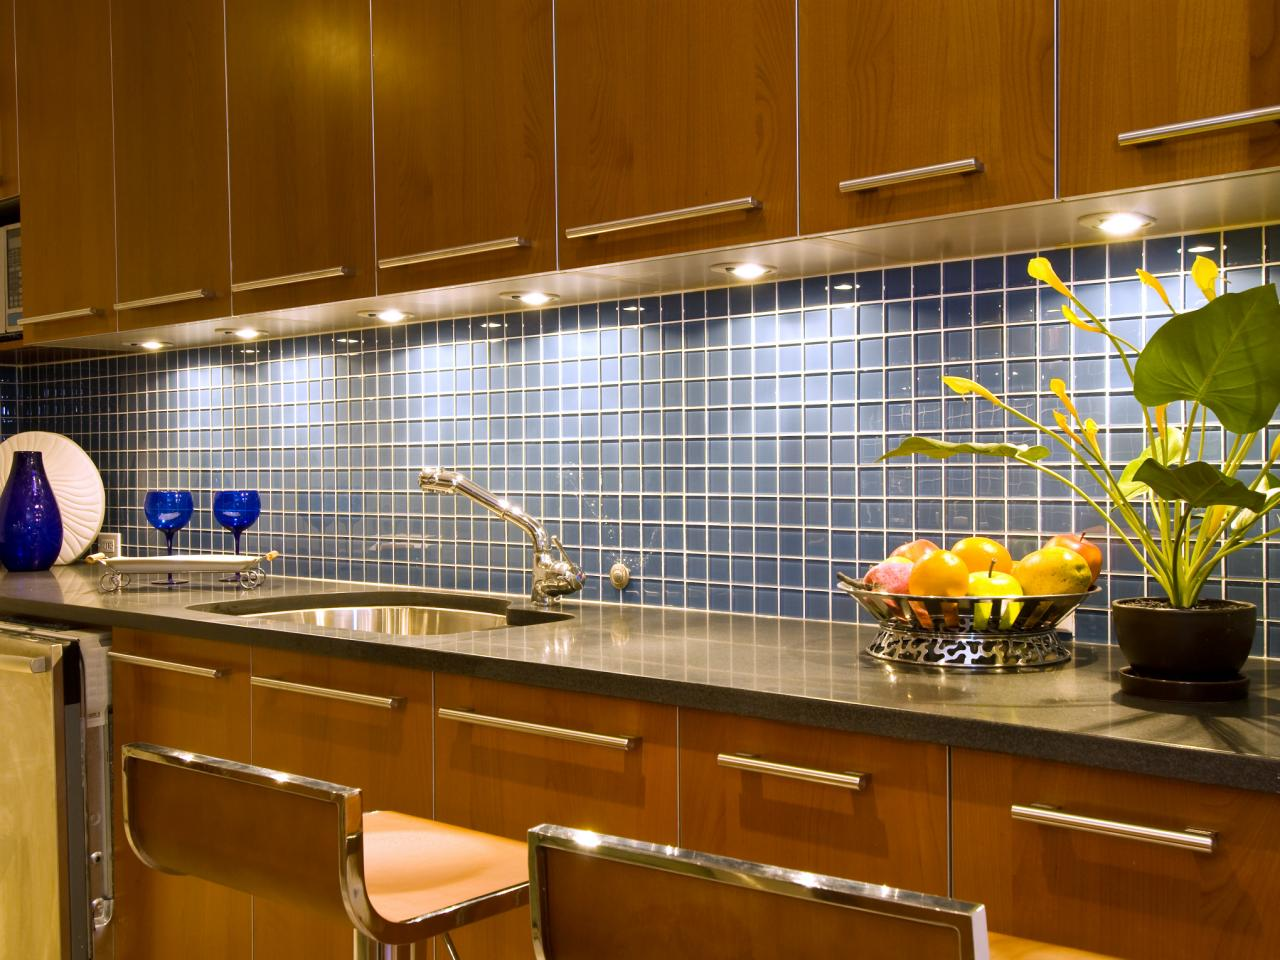 Of Kitchen Tiles Style Your Kitchen With The Latest In Tile Hgtv